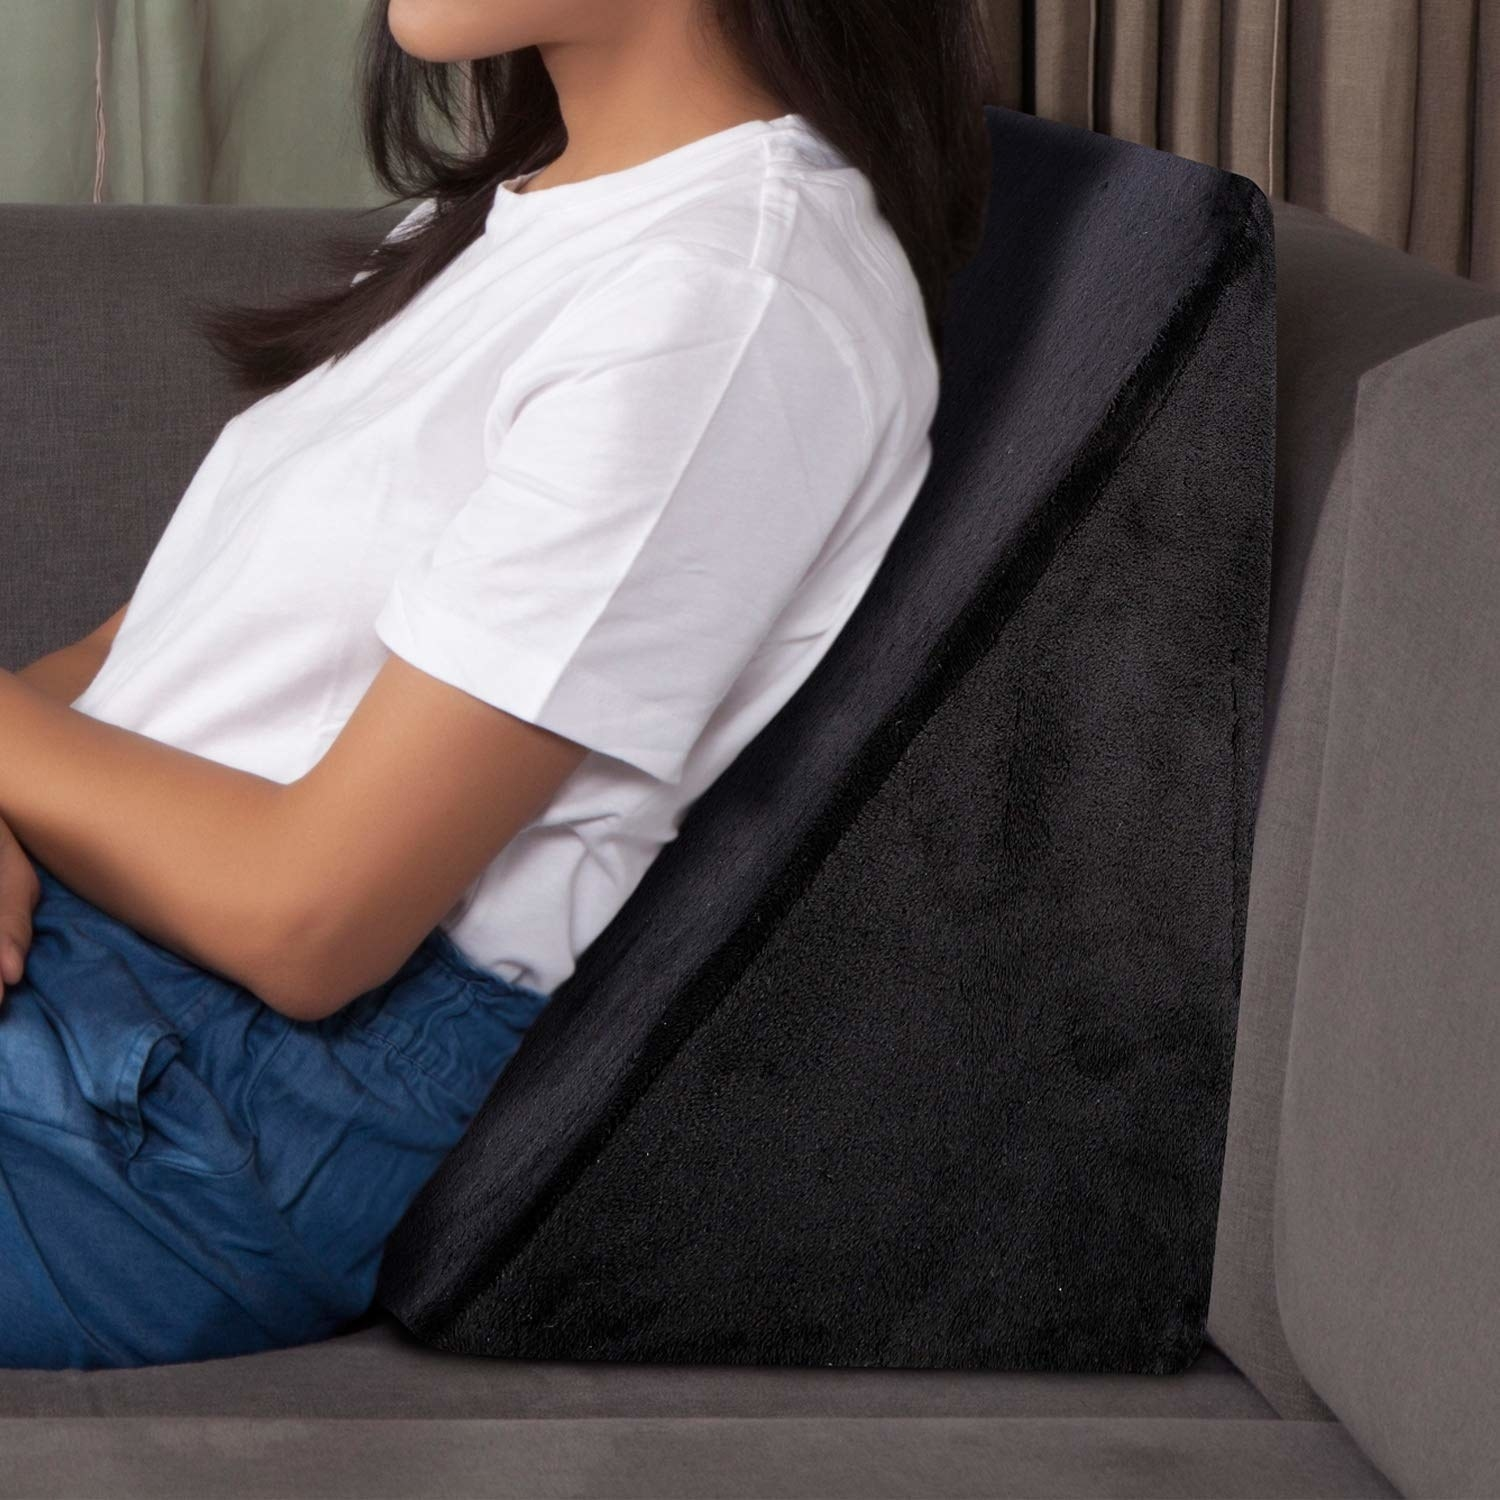 A wedge pillow with a woman leaning on it